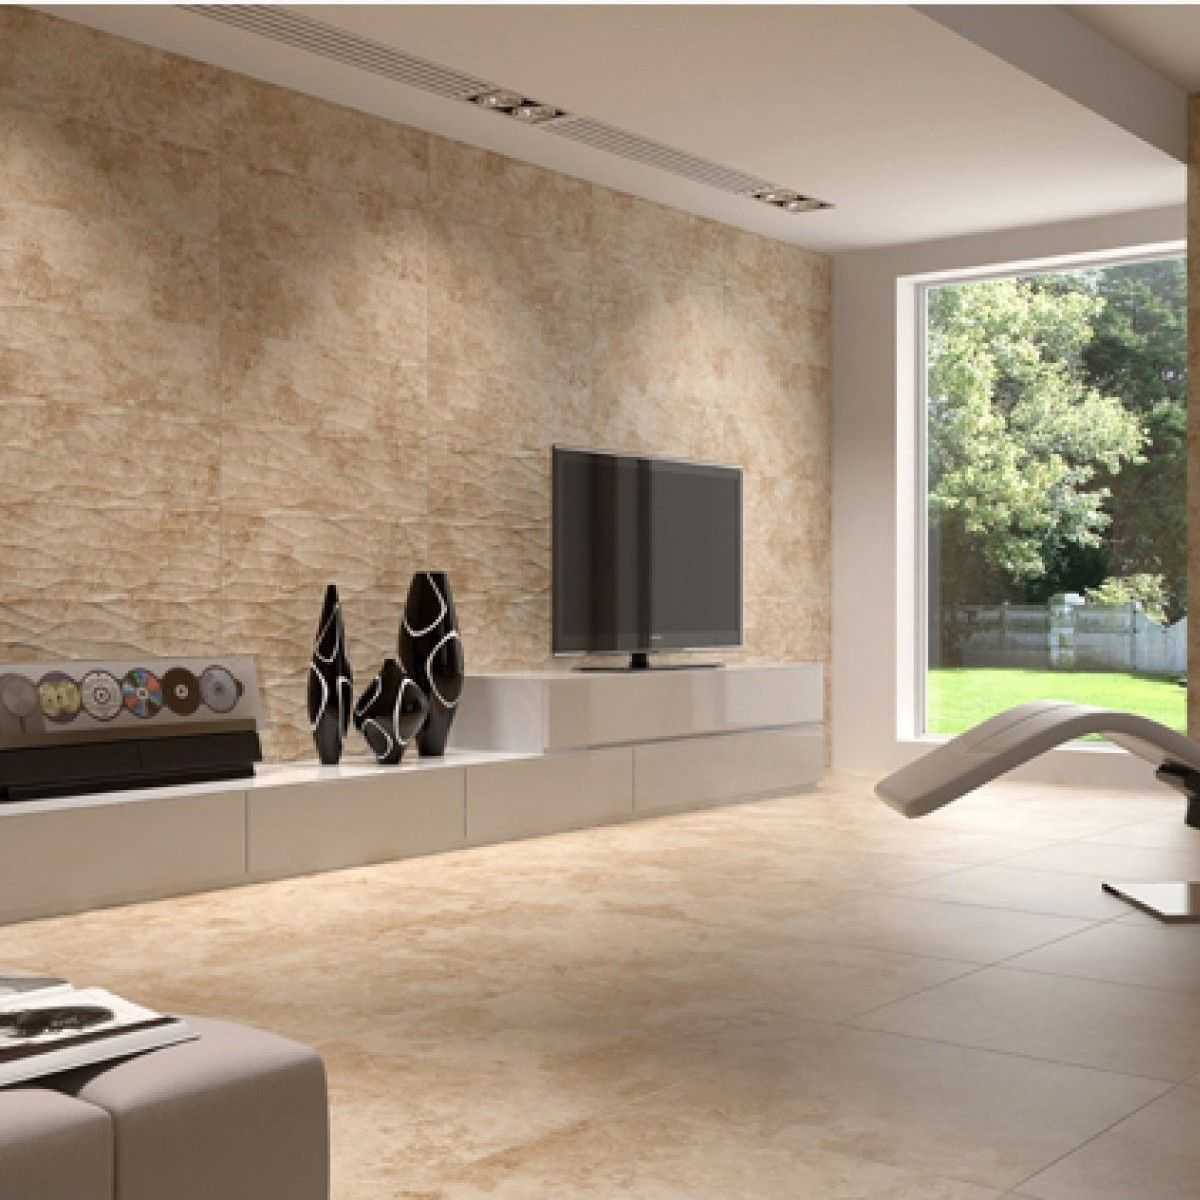 Tivoli noce 450mm x 450mm floor tiles pinterest tiles shown here is the wavy finish wall tile and the matching floor tiles in dailygadgetfo Choice Image